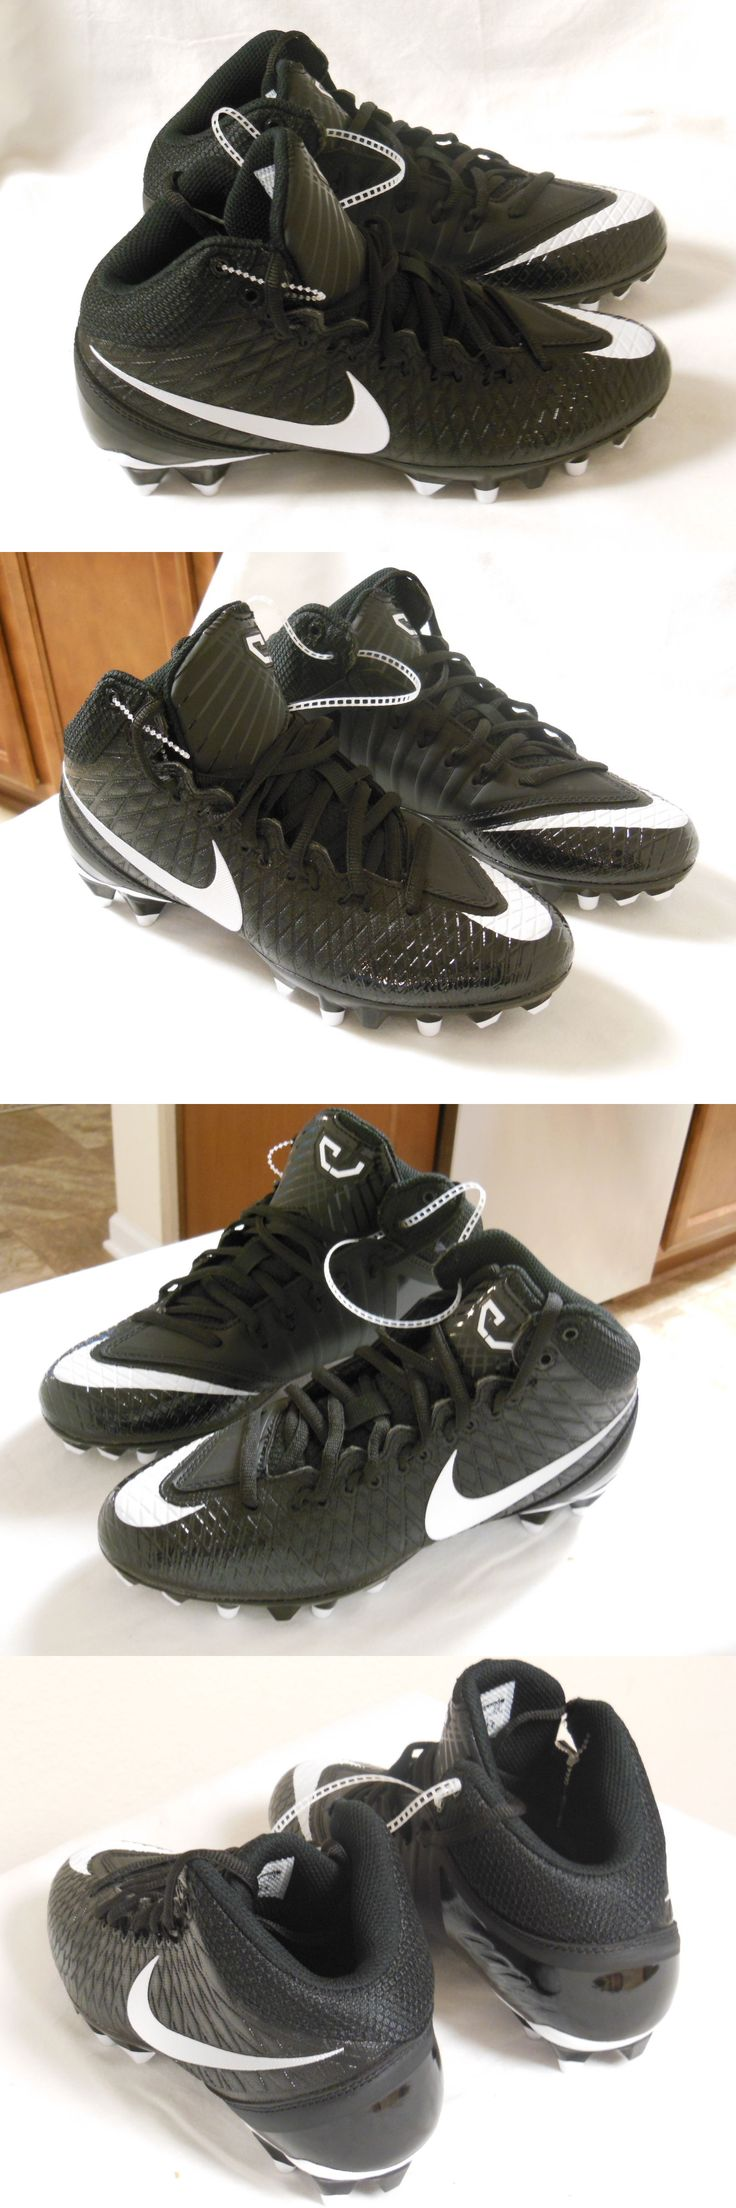 Youth 159118: Nike Calvin Johnson Cj3 Pro Td Youth Football Cleats Black 723975-010 Size 4.5Y BUY IT NOW ONLY: $32.95